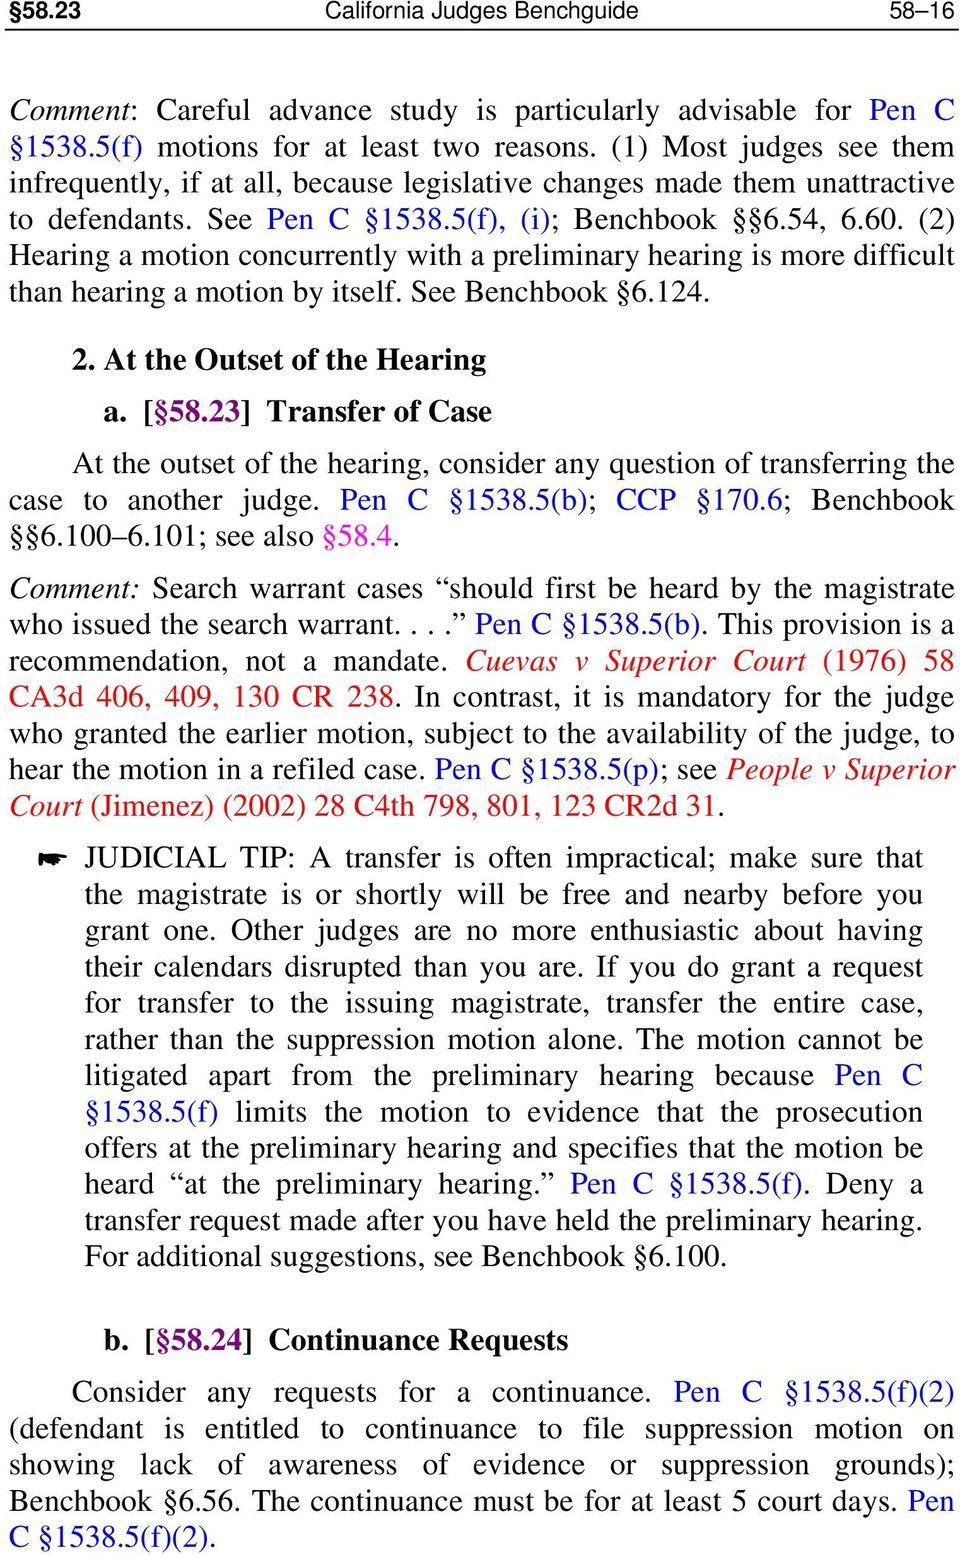 (2) Hearing a motion concurrently with a preliminary hearing is more difficult than hearing a motion by itself. See Benchbook 6.124. 2. At the Outset of the Hearing a. [ 58.